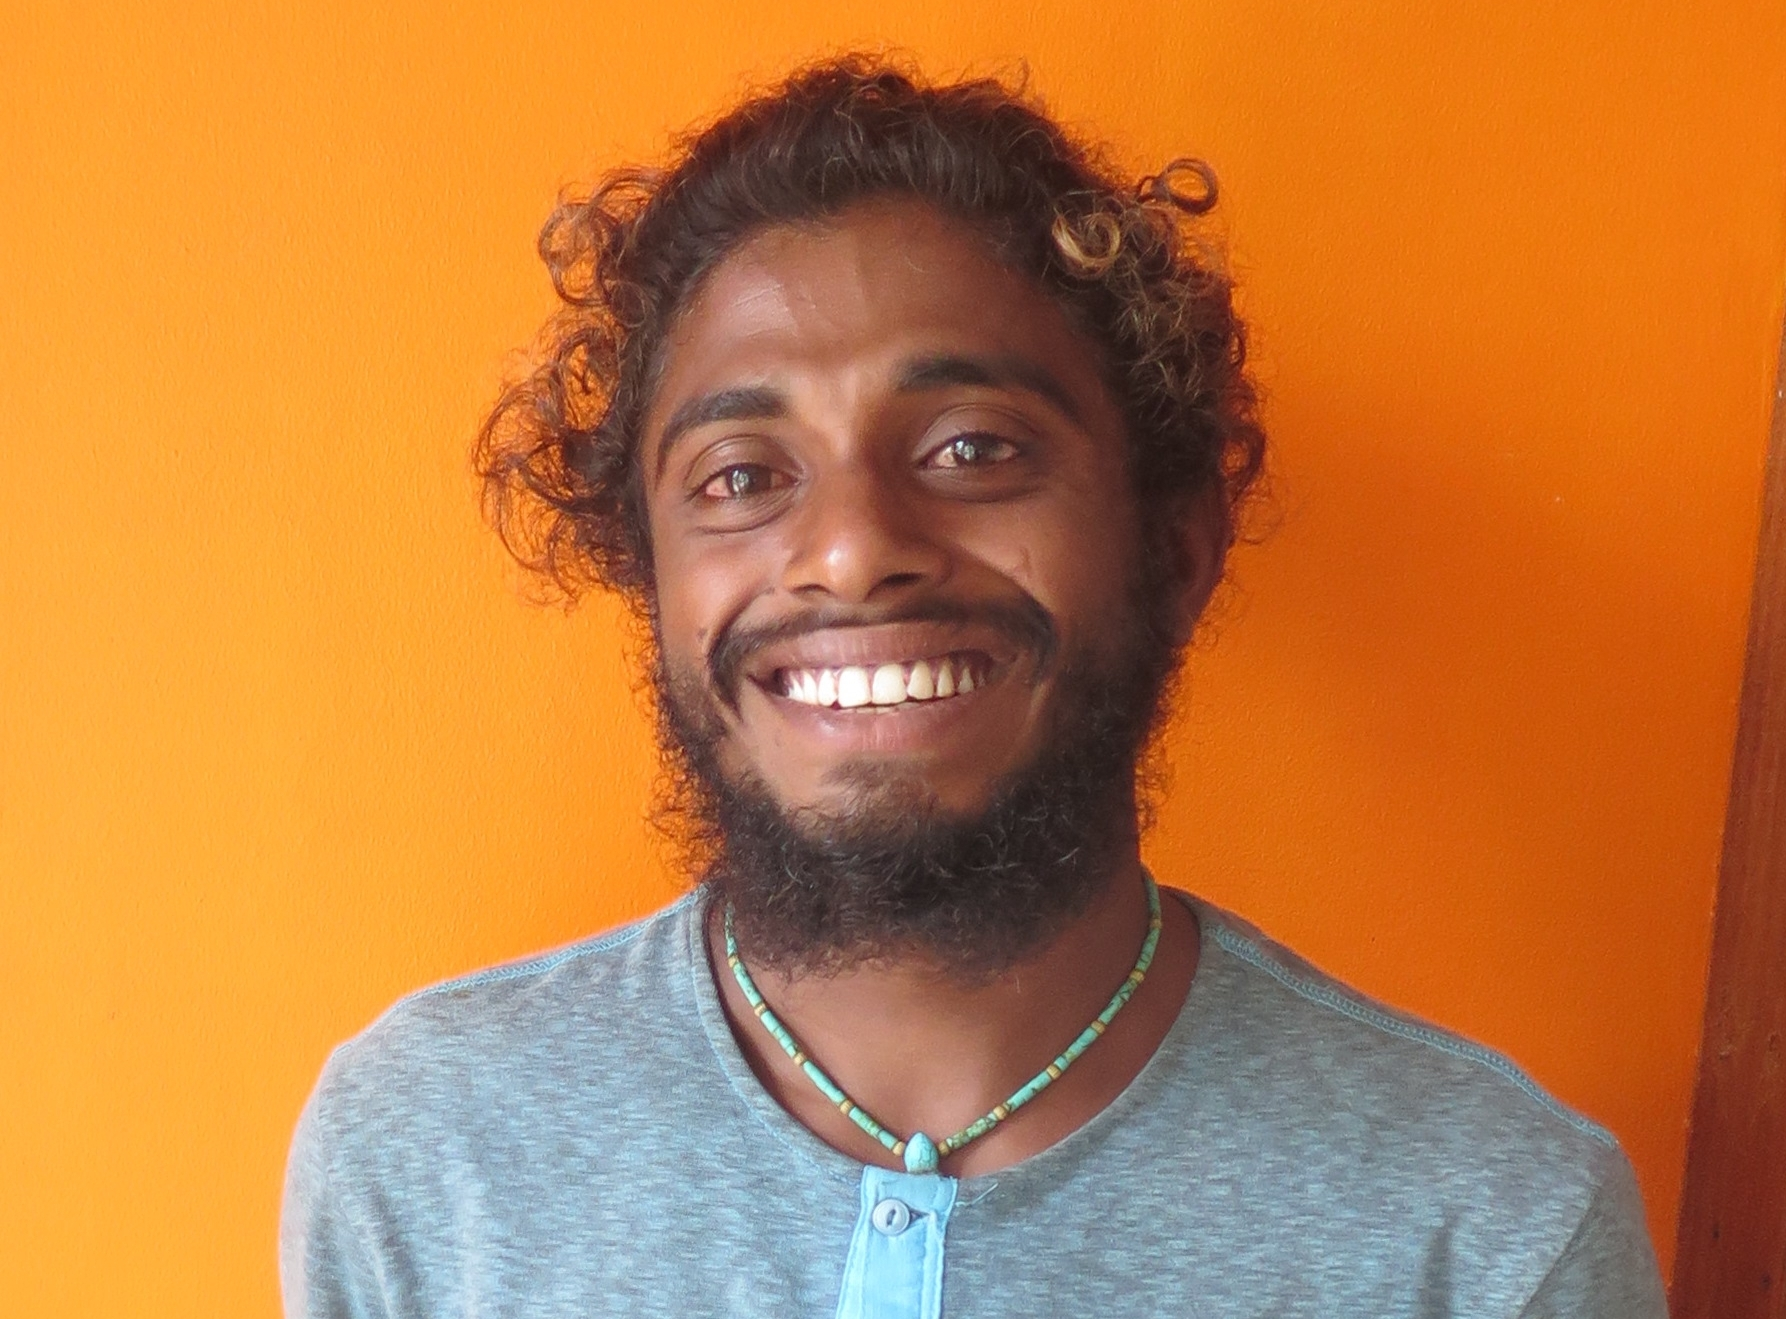 Mohamed Haseeb Abdulla (who goes by Patchi) is concerned about his country's future. Most of the land in the Maldives is less than a meter above sea level, and rising oceans are steadily encroaching. In addition, the largest coral bleaching event in recorded history occurred this year, and the beautiful Maldivian coral reefs were severely degraded. Because island nations that are affected the most by climate change are the lowest emitters of greenhouse gases, countries like the Maldives must appeal to the international community to protect their futures. To address problems that are more easily controlled than climate change, Patchi is working on local marine issues in the Maldives, with a special focus on plastic pollution. For example, Patchi has enlisted hundreds of young Maldivians to regularly lead beach cleanups and educate on how to care for coral reefs.